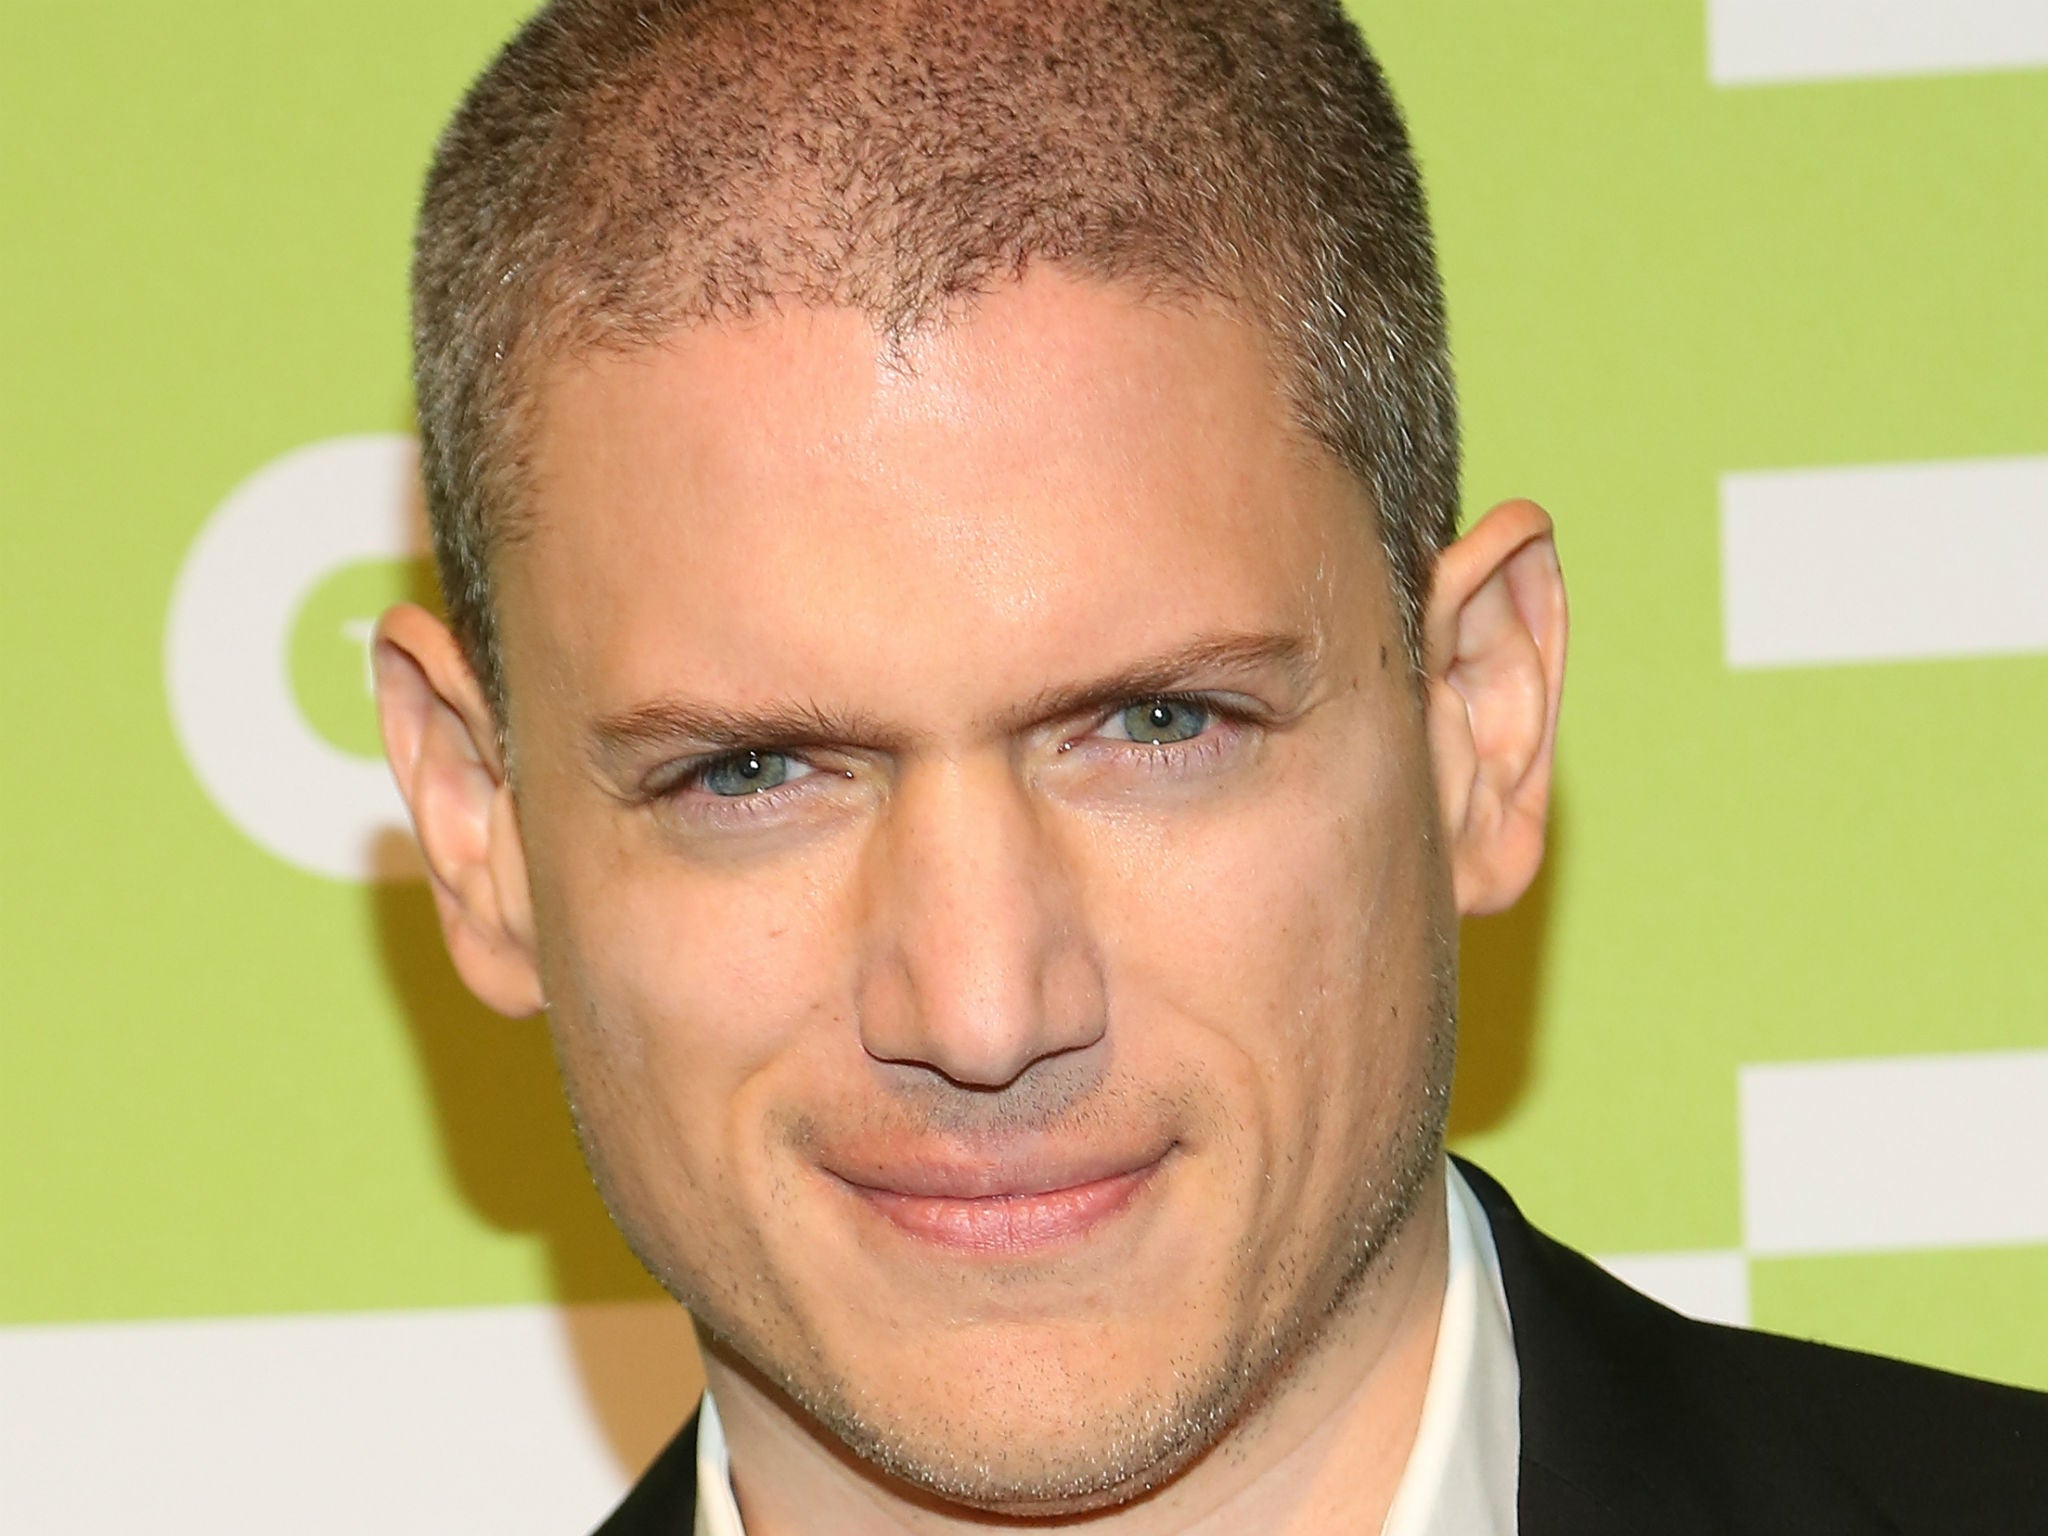 wentworth miller prison break actor pens essay on mental health wentworth miller prison break actor pens essay on mental health in response to body shaming facebook meme the independent